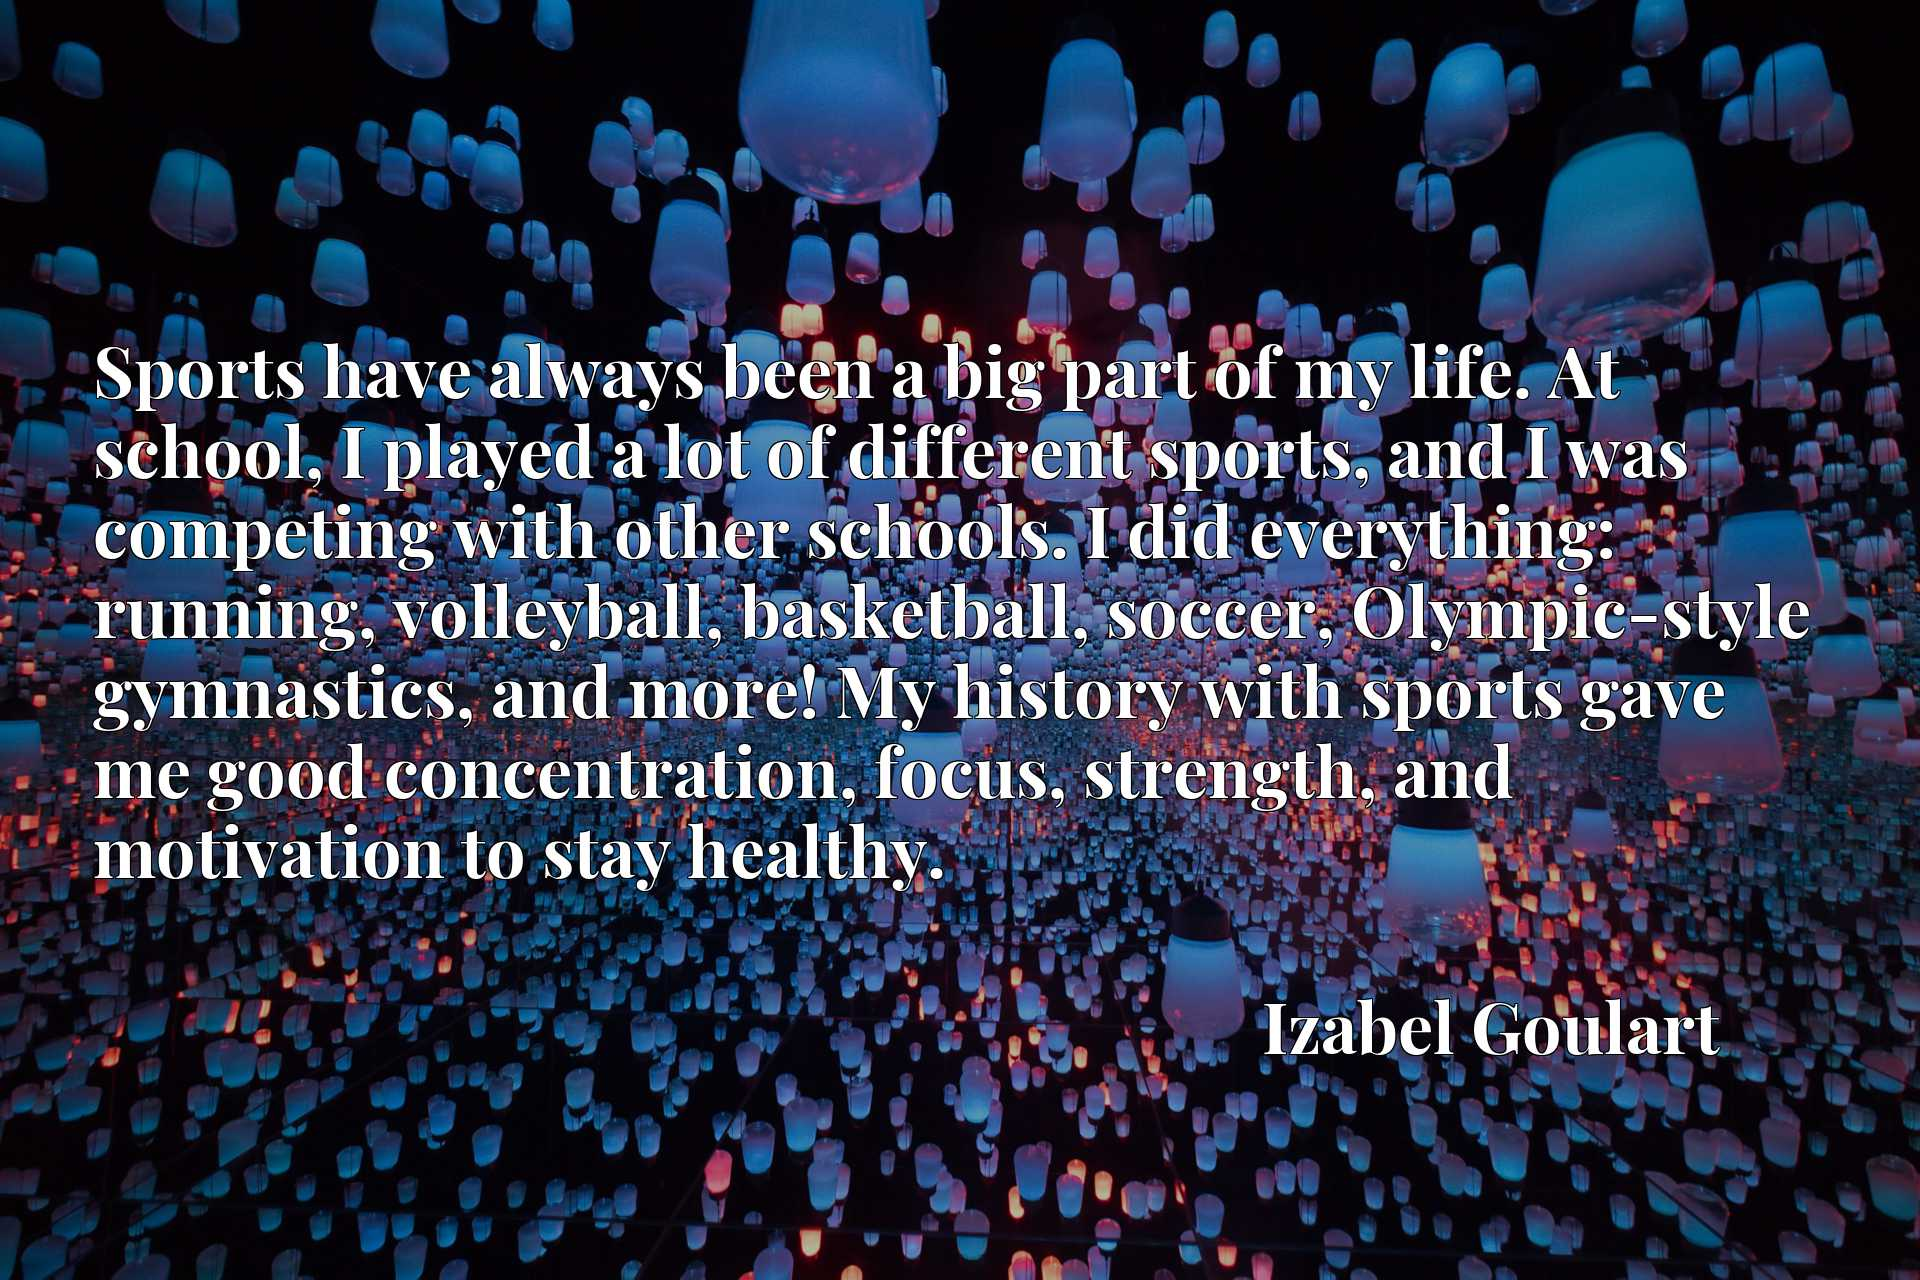 Sports have always been a big part of my life. At school, I played a lot of different sports, and I was competing with other schools. I did everything: running, volleyball, basketball, soccer, Olympic-style gymnastics, and more! My history with sports gave me good concentration, focus, strength, and motivation to stay healthy.